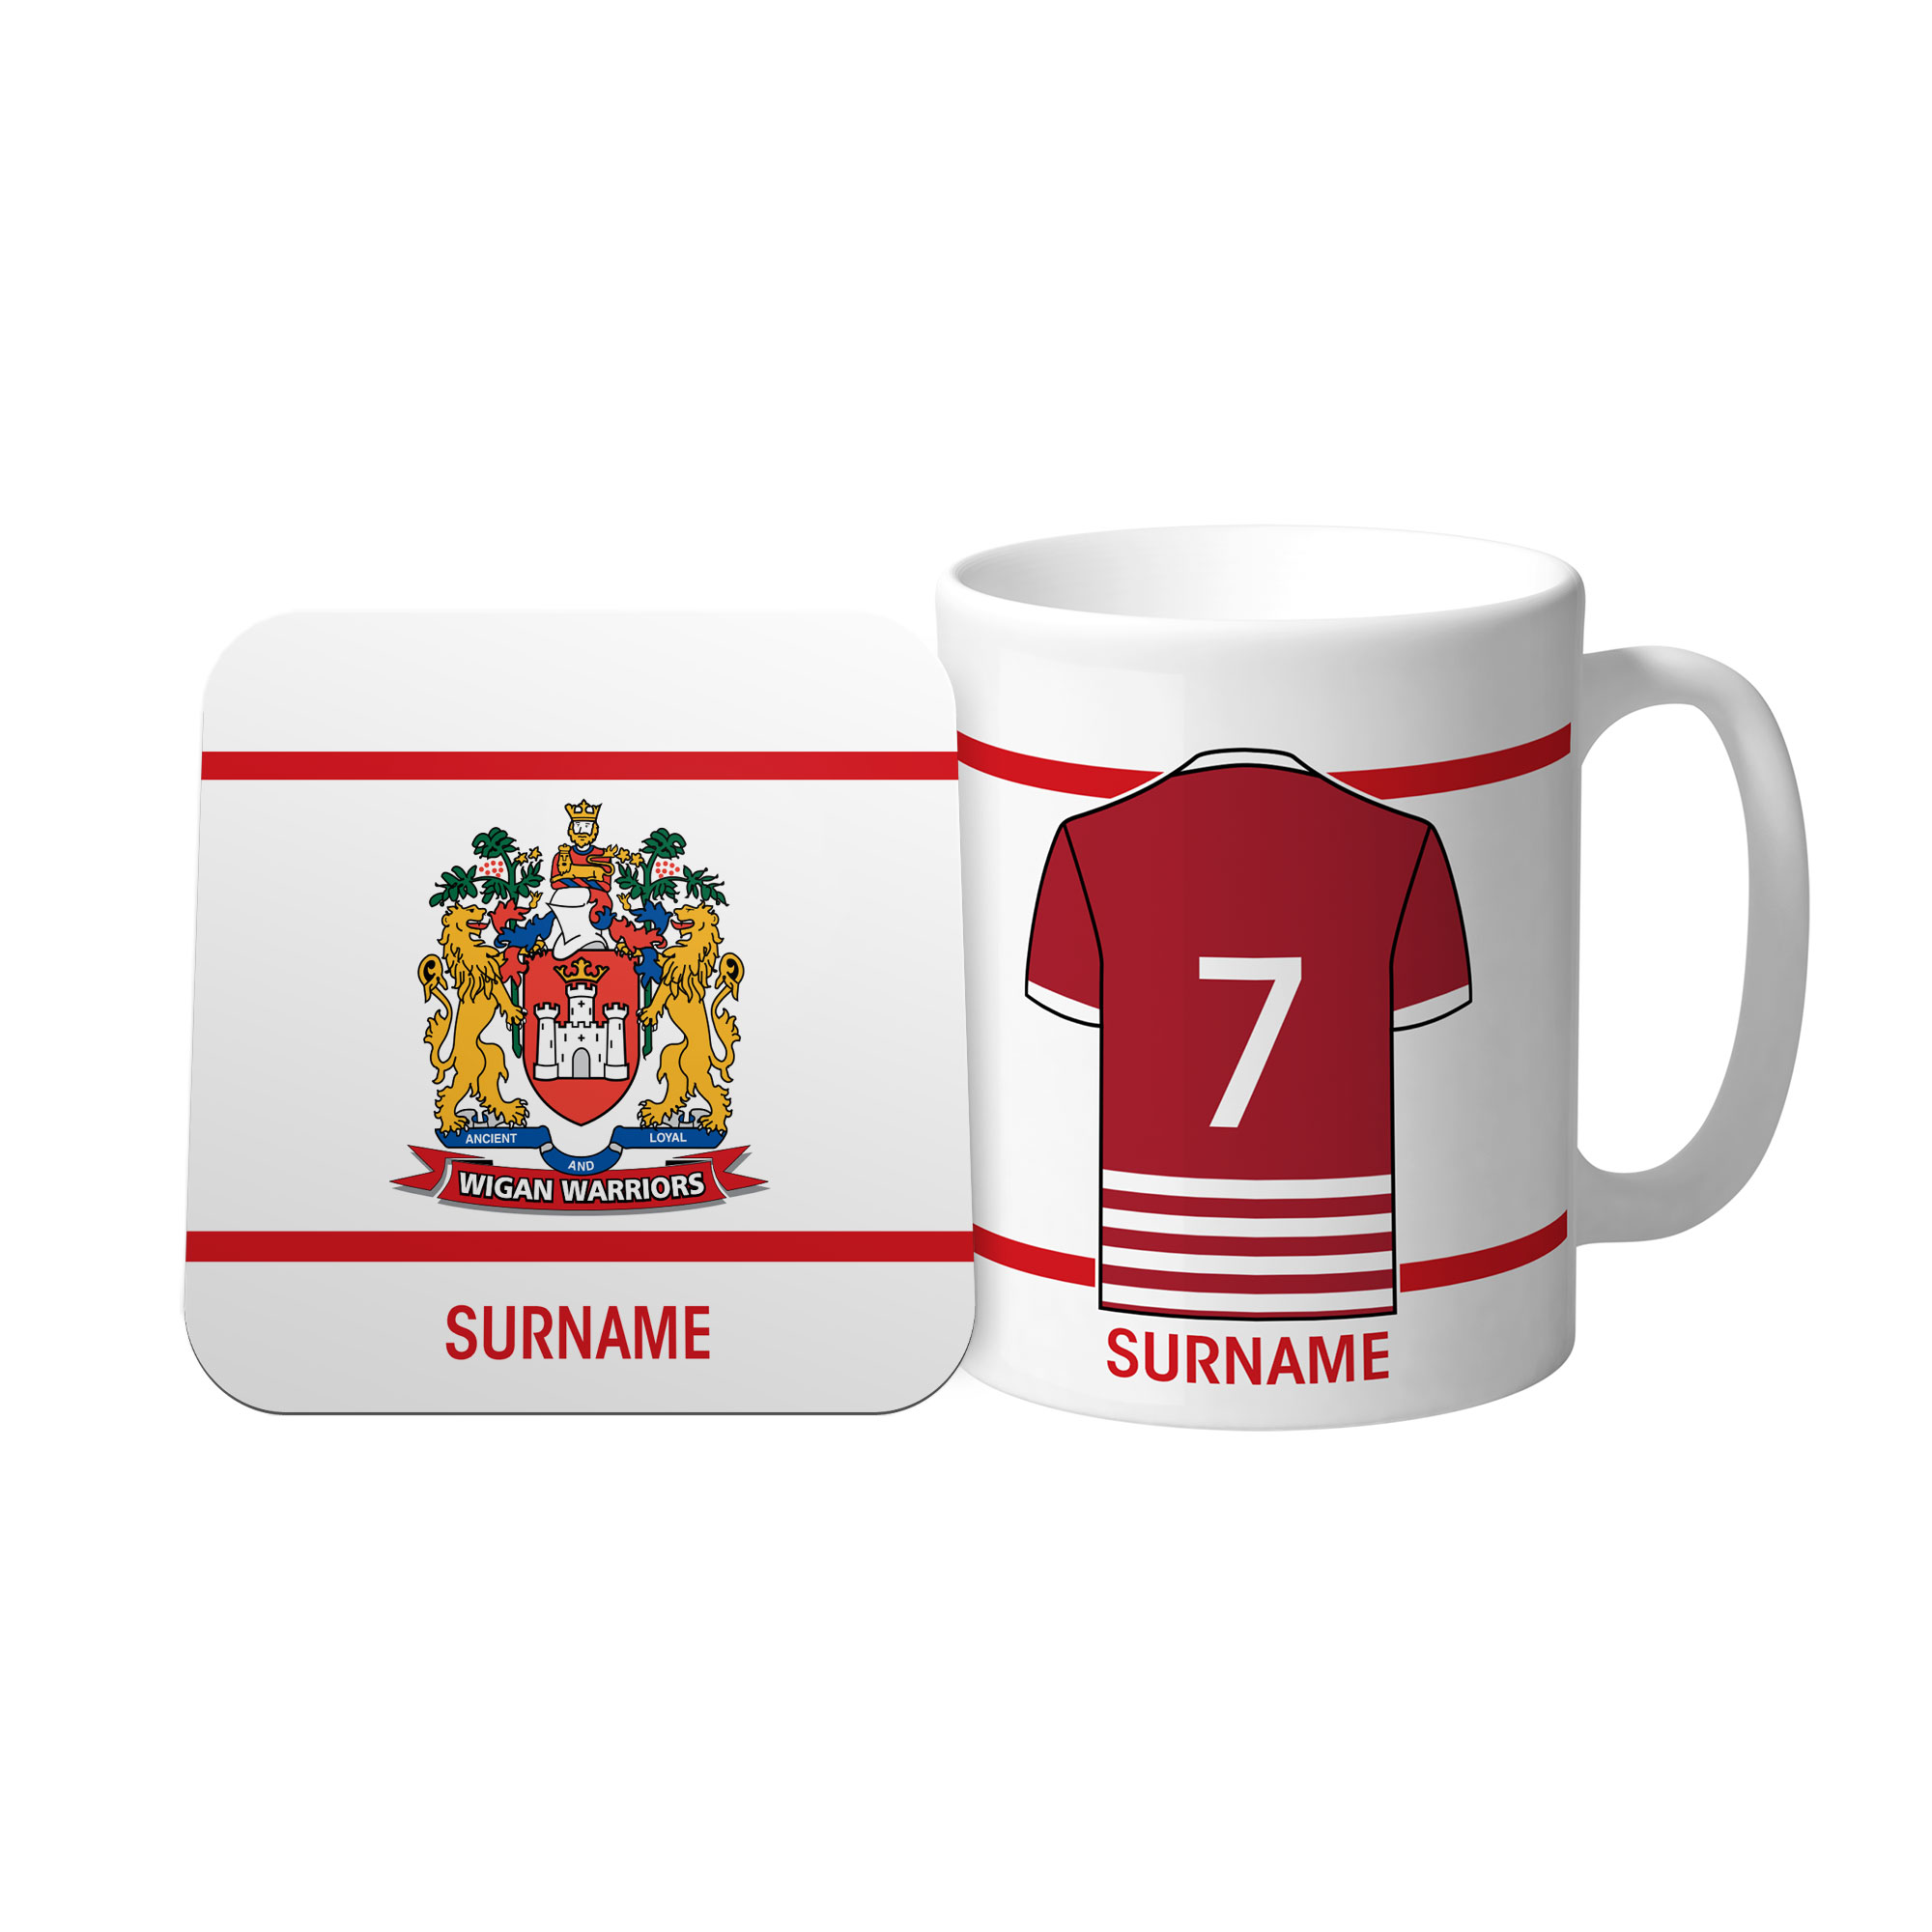 Wigan Warriors Shirt Mug & Coaster Set